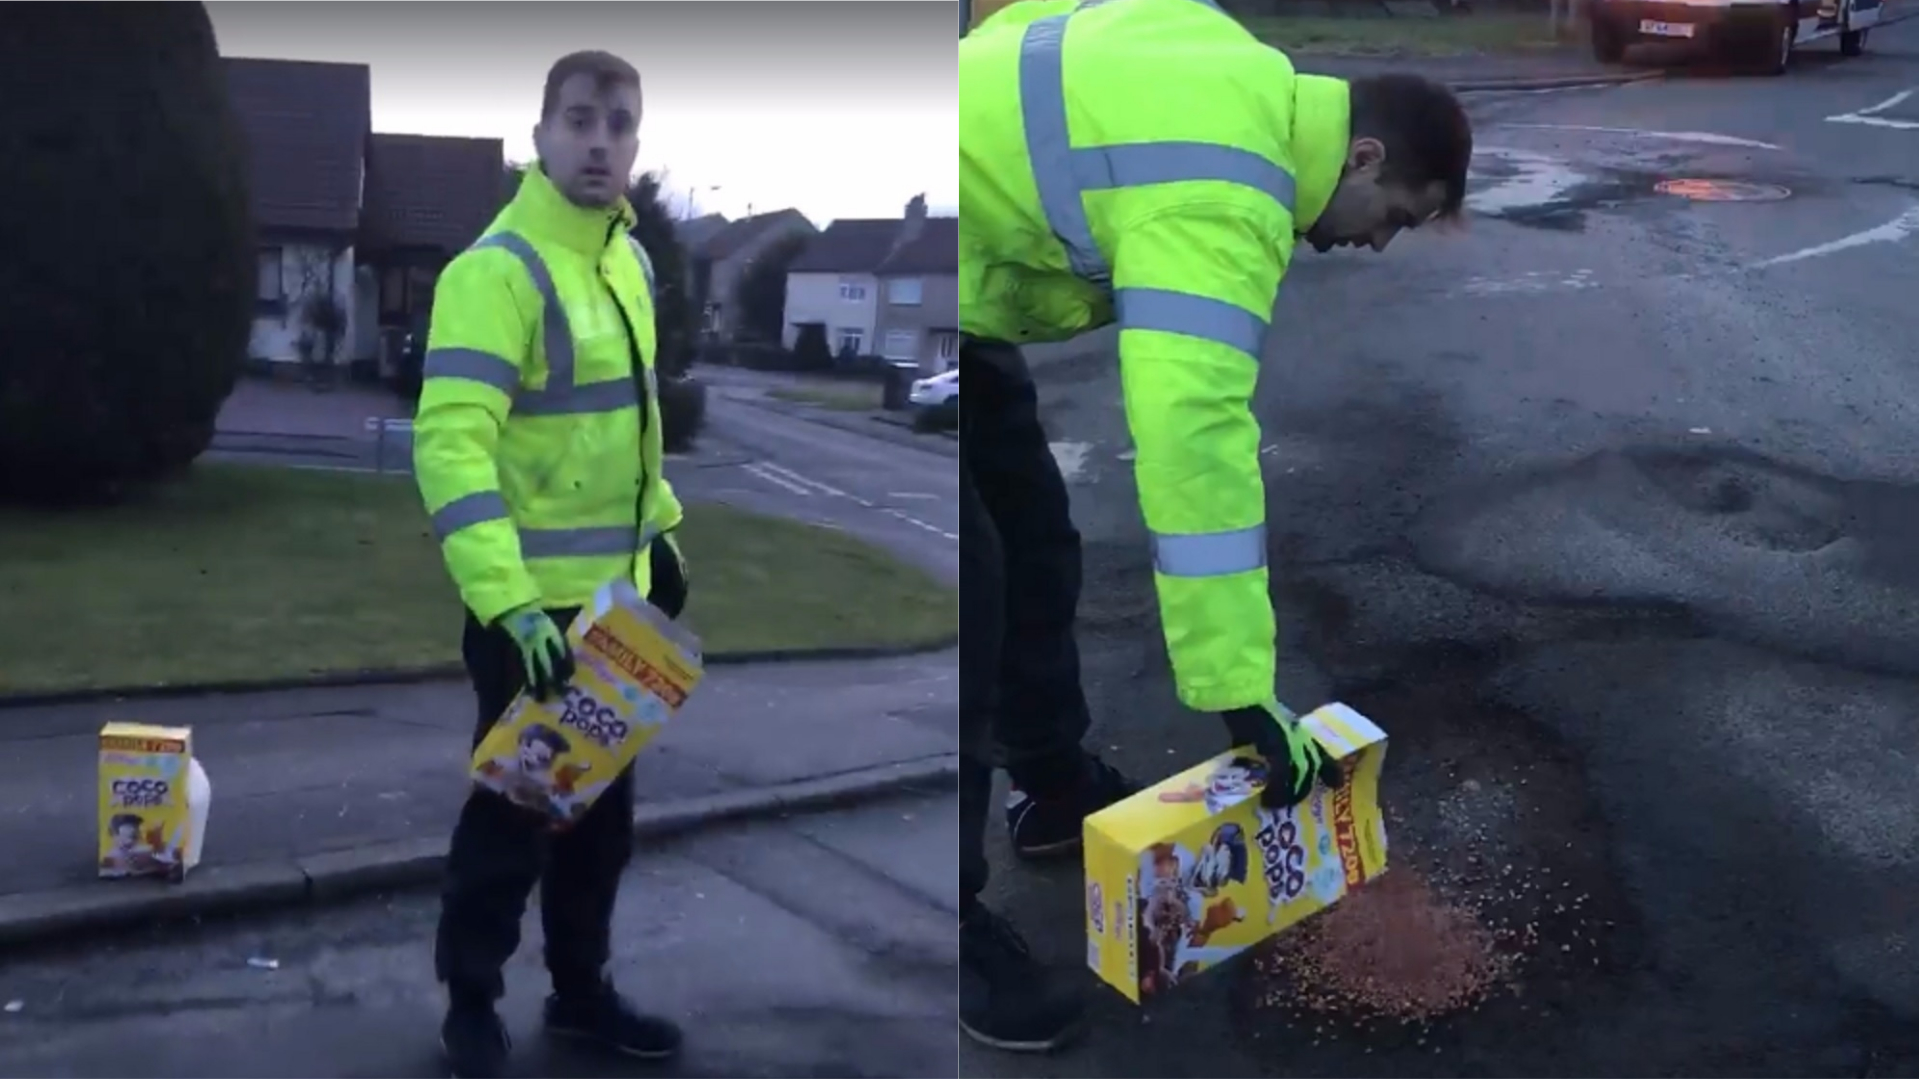 A satirical video shows a man filling potholes with Coco Pops